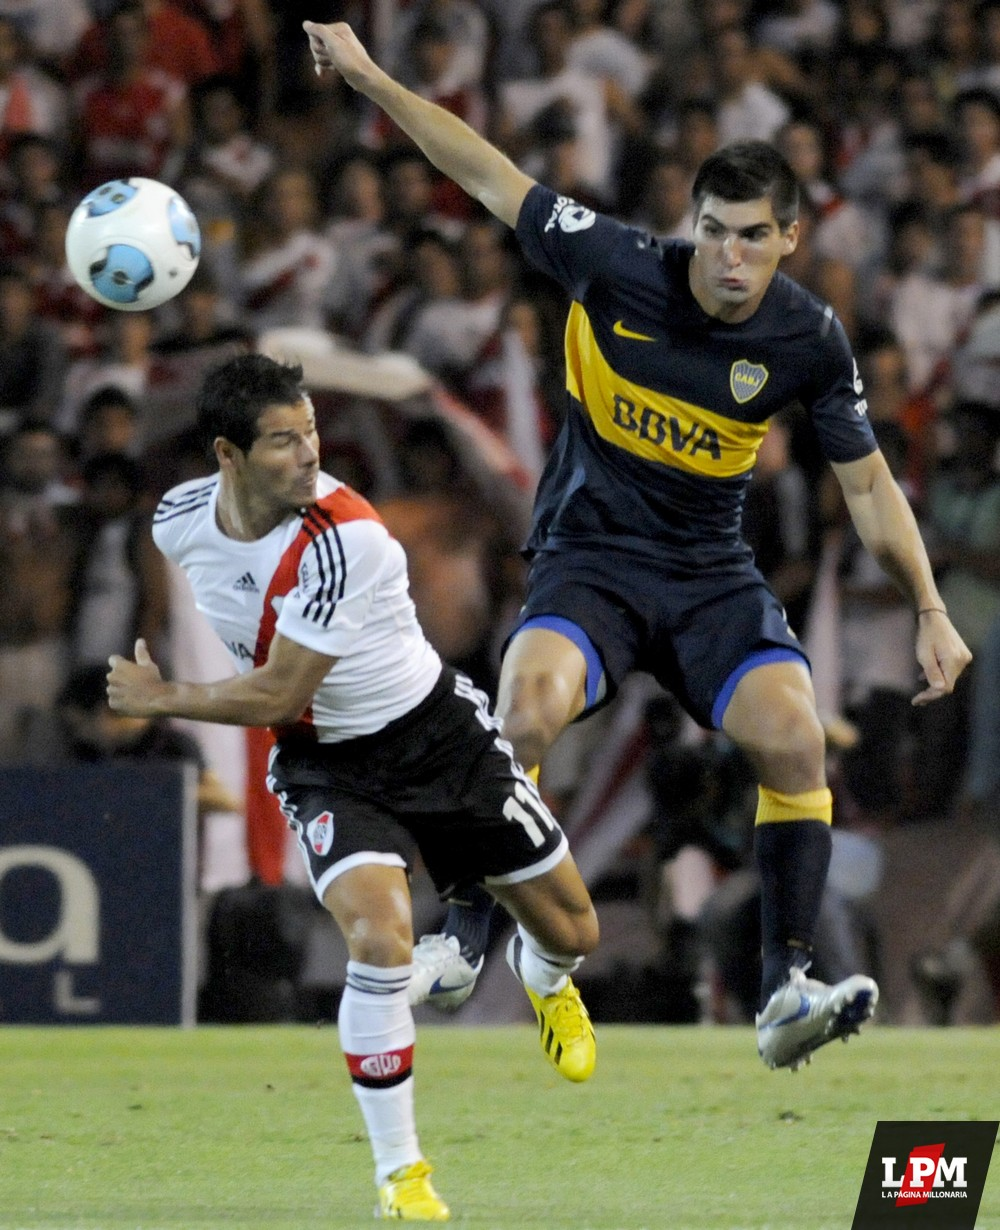 River vs. Boca (Mendoza 2013)